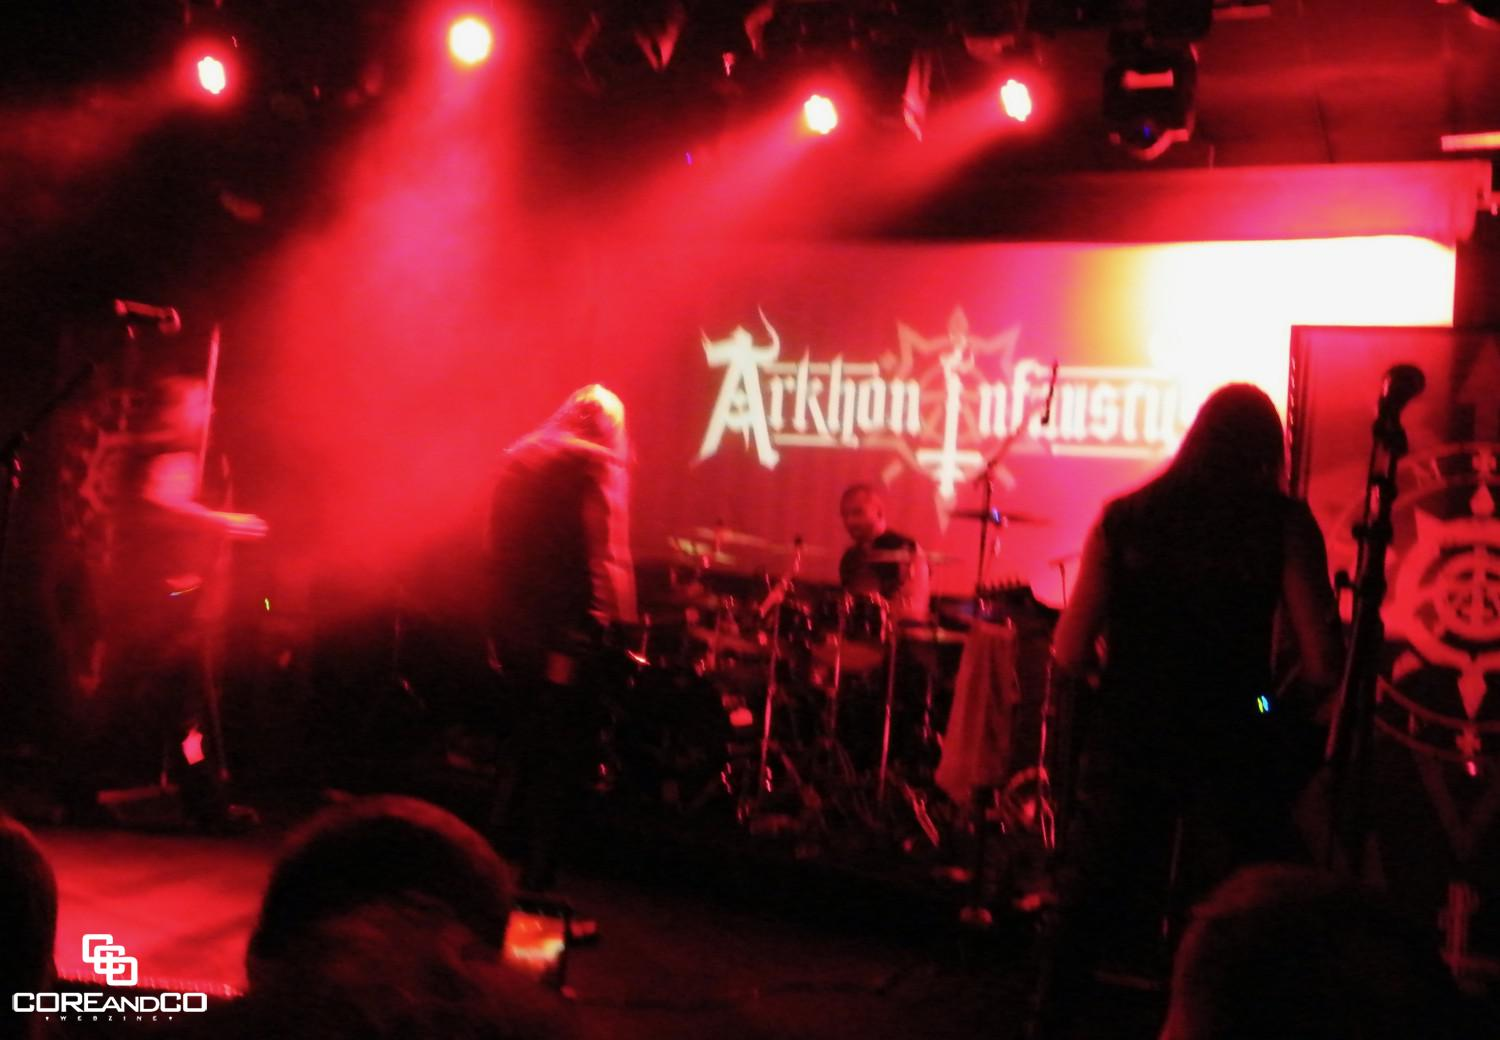 Arkhon Infaustus + The Great Old Ones + Au-dessus + Regarde Les Hommes Tomber - photo27